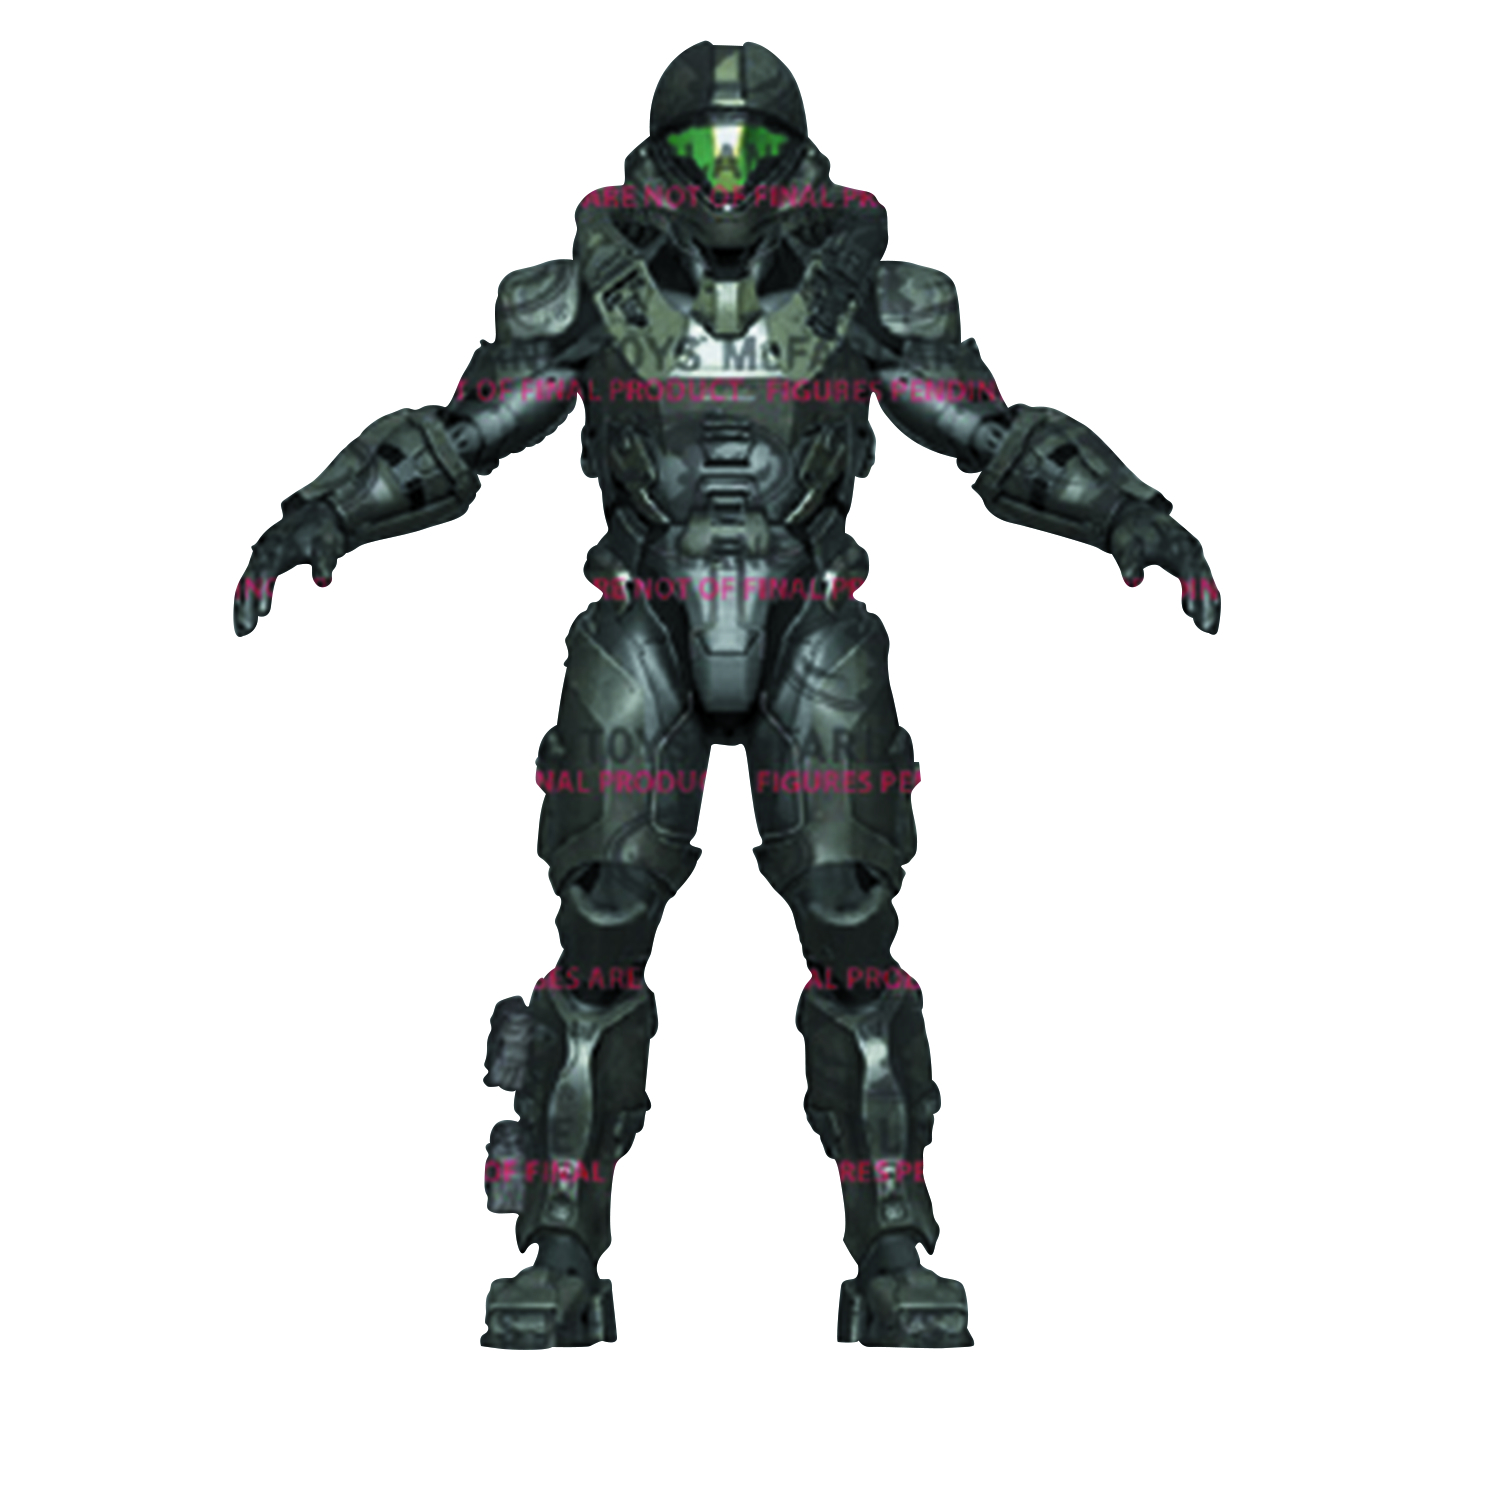 HALO 5 GUARDIANS SER 2 SPARTAN BUCK AF CS